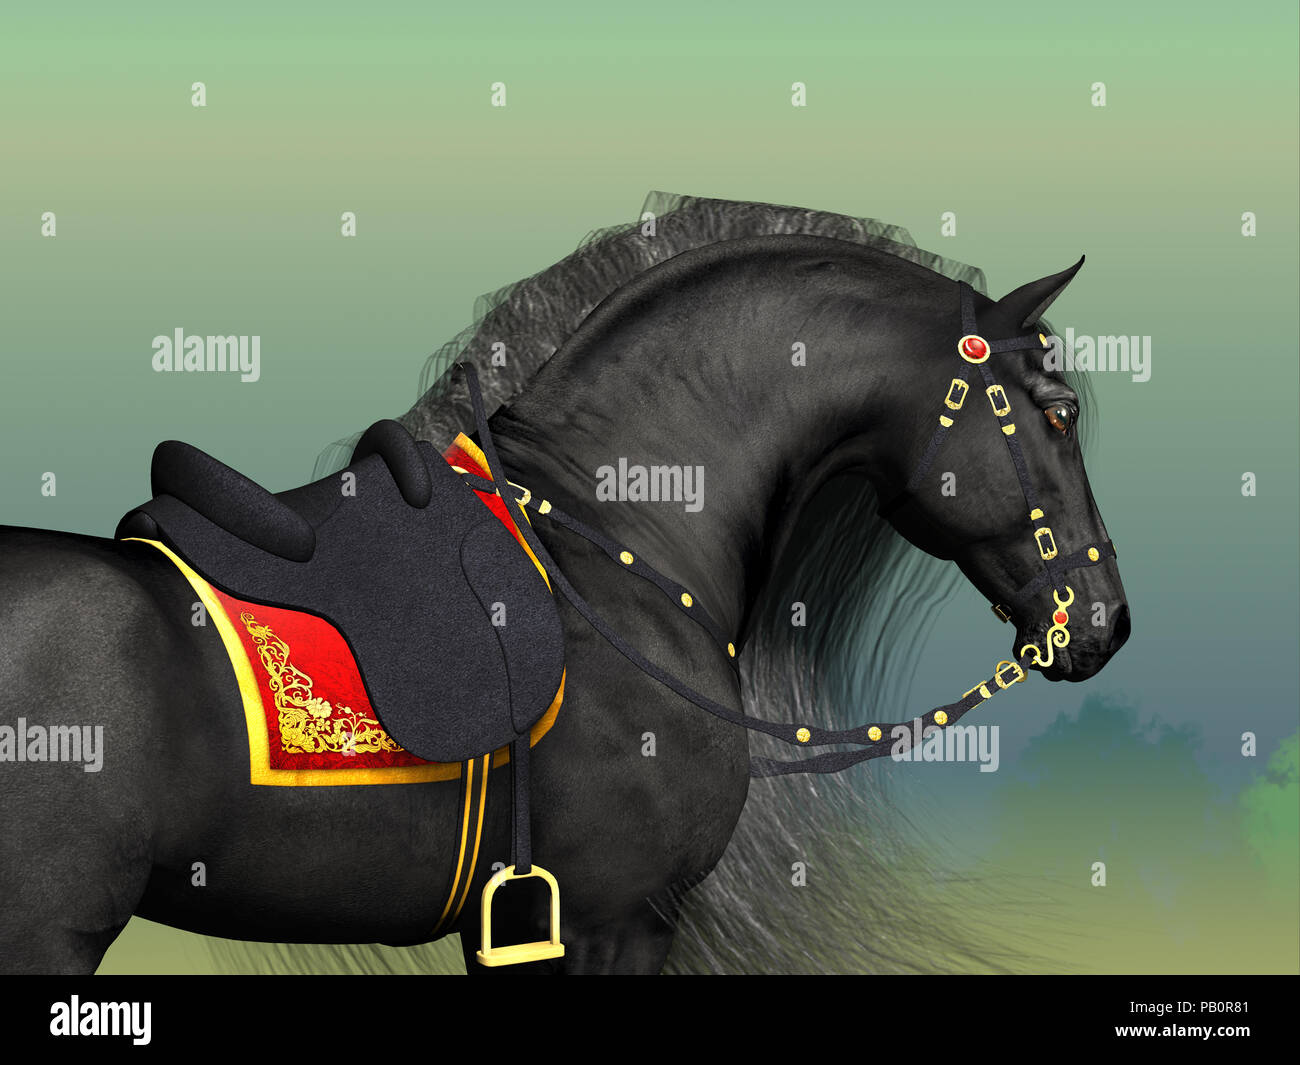 Dark Horse - A Friesian black stallion adorned with fancy Classic saddle and bridle horse tack. - Stock Image